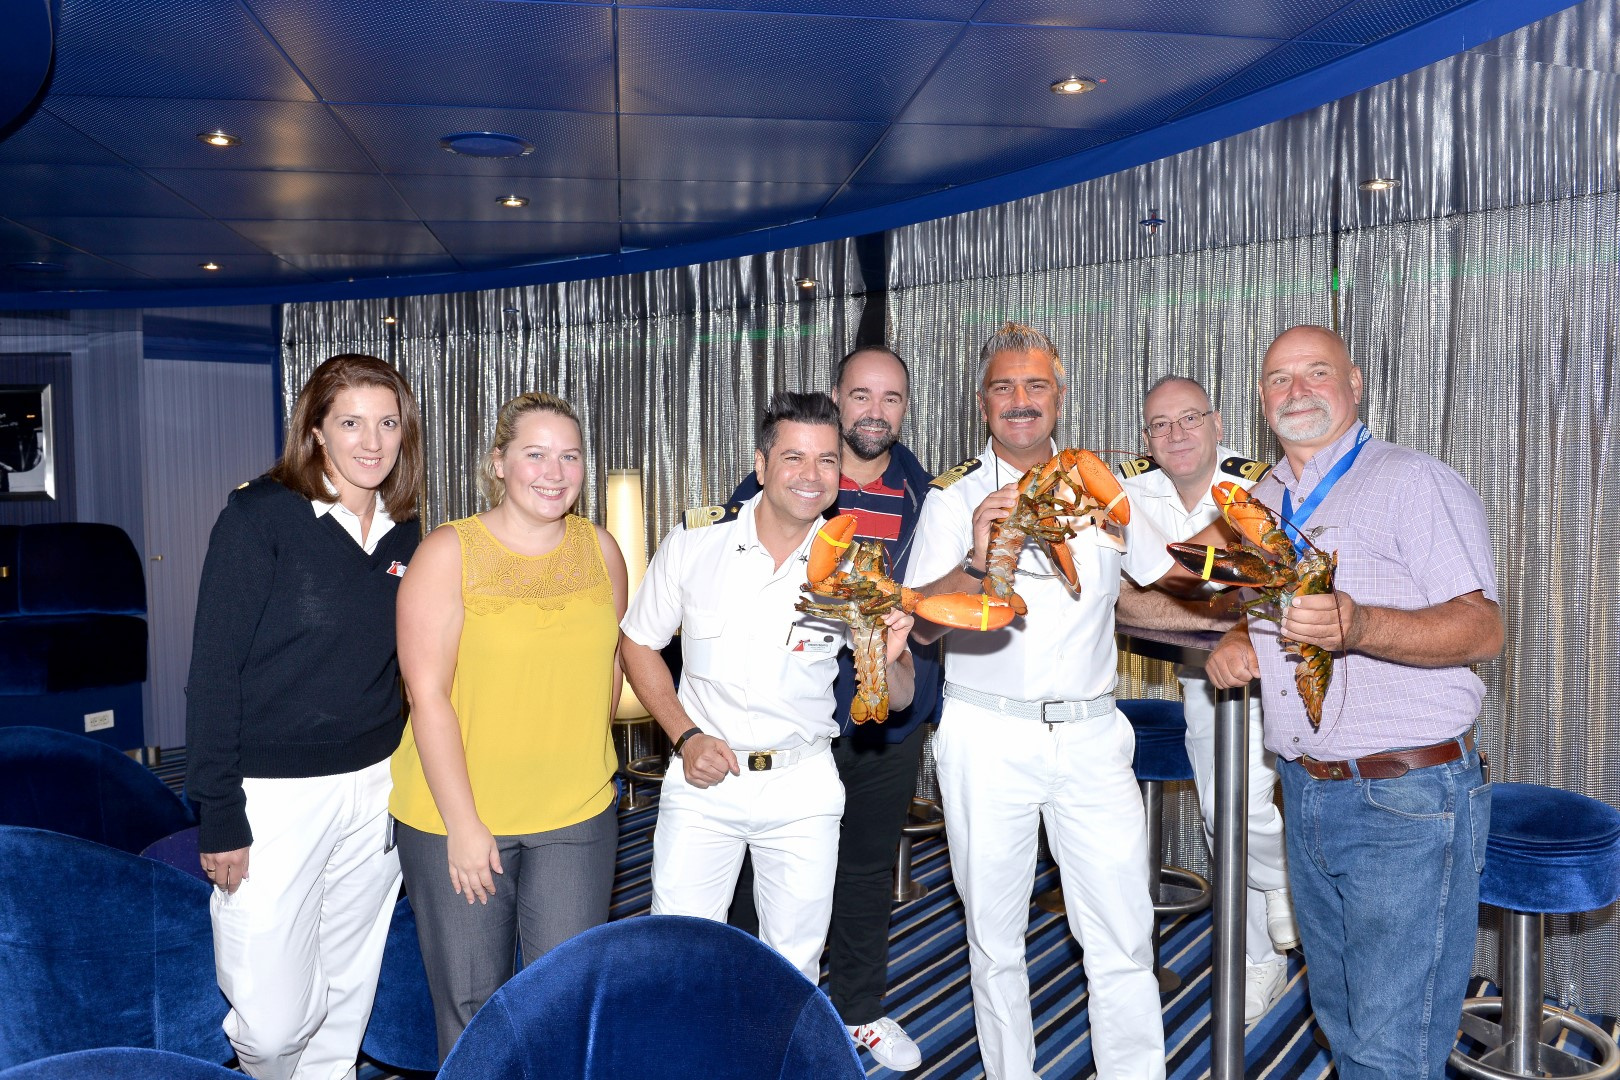 Traditional Maritime Plaque (And Lobster?) Exchange  Marks Carnival Sunshine's Inaugural Call at Portland, Maine